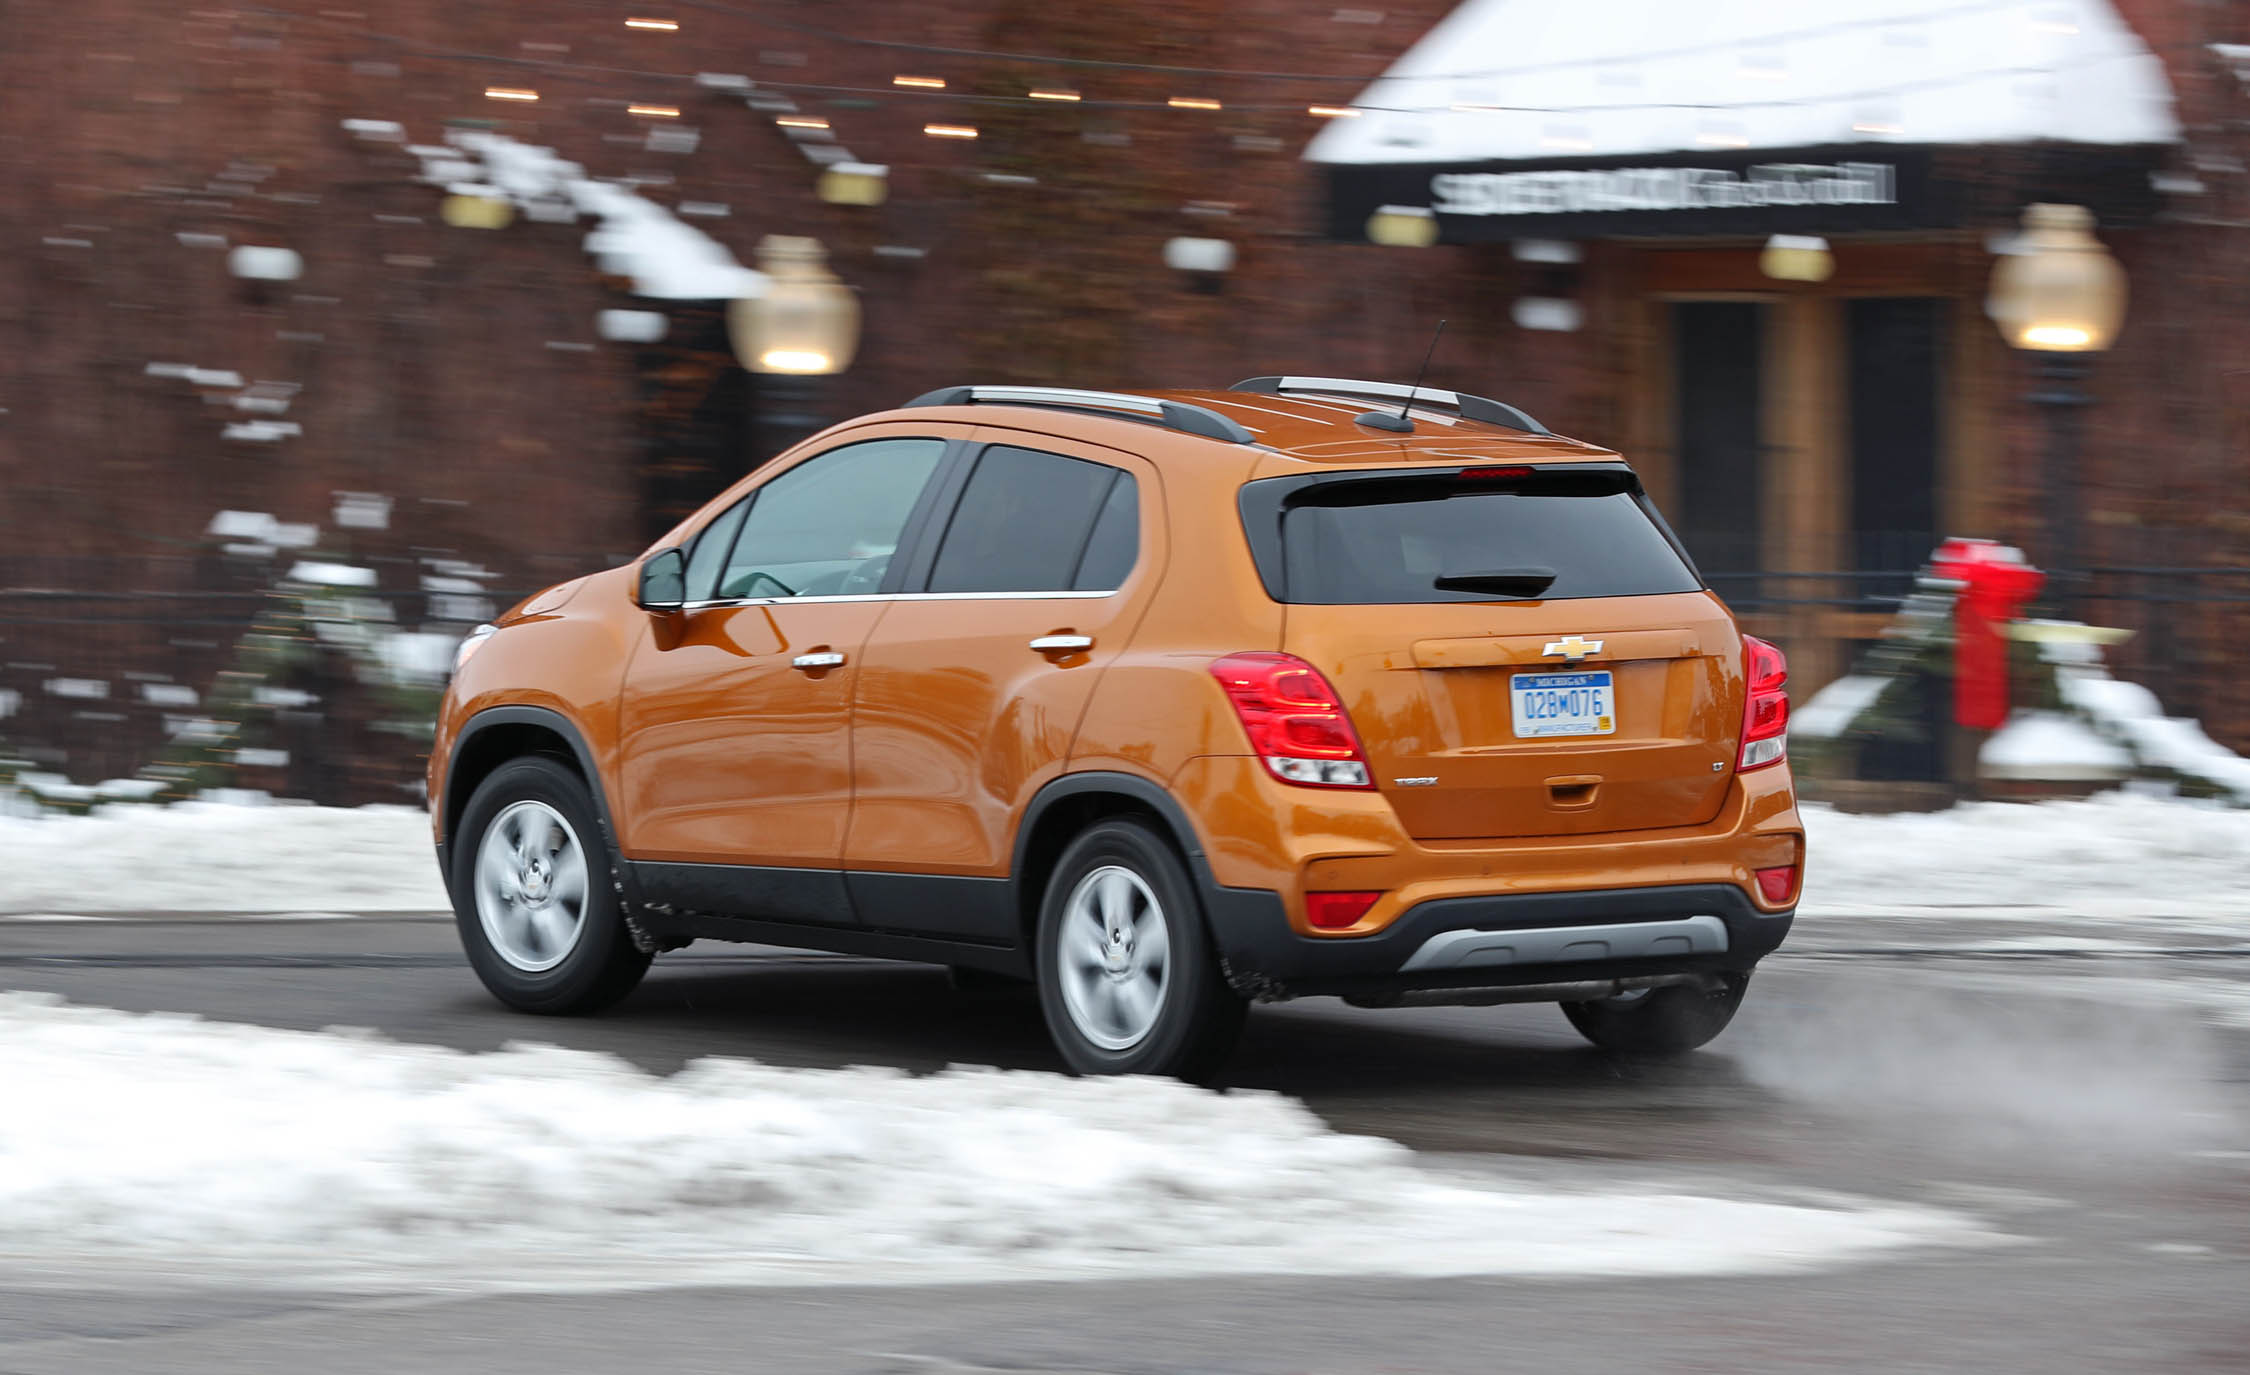 2017 Chevrolet Trax Test Drive Rear And Side Preview (Photo 39 of 47)